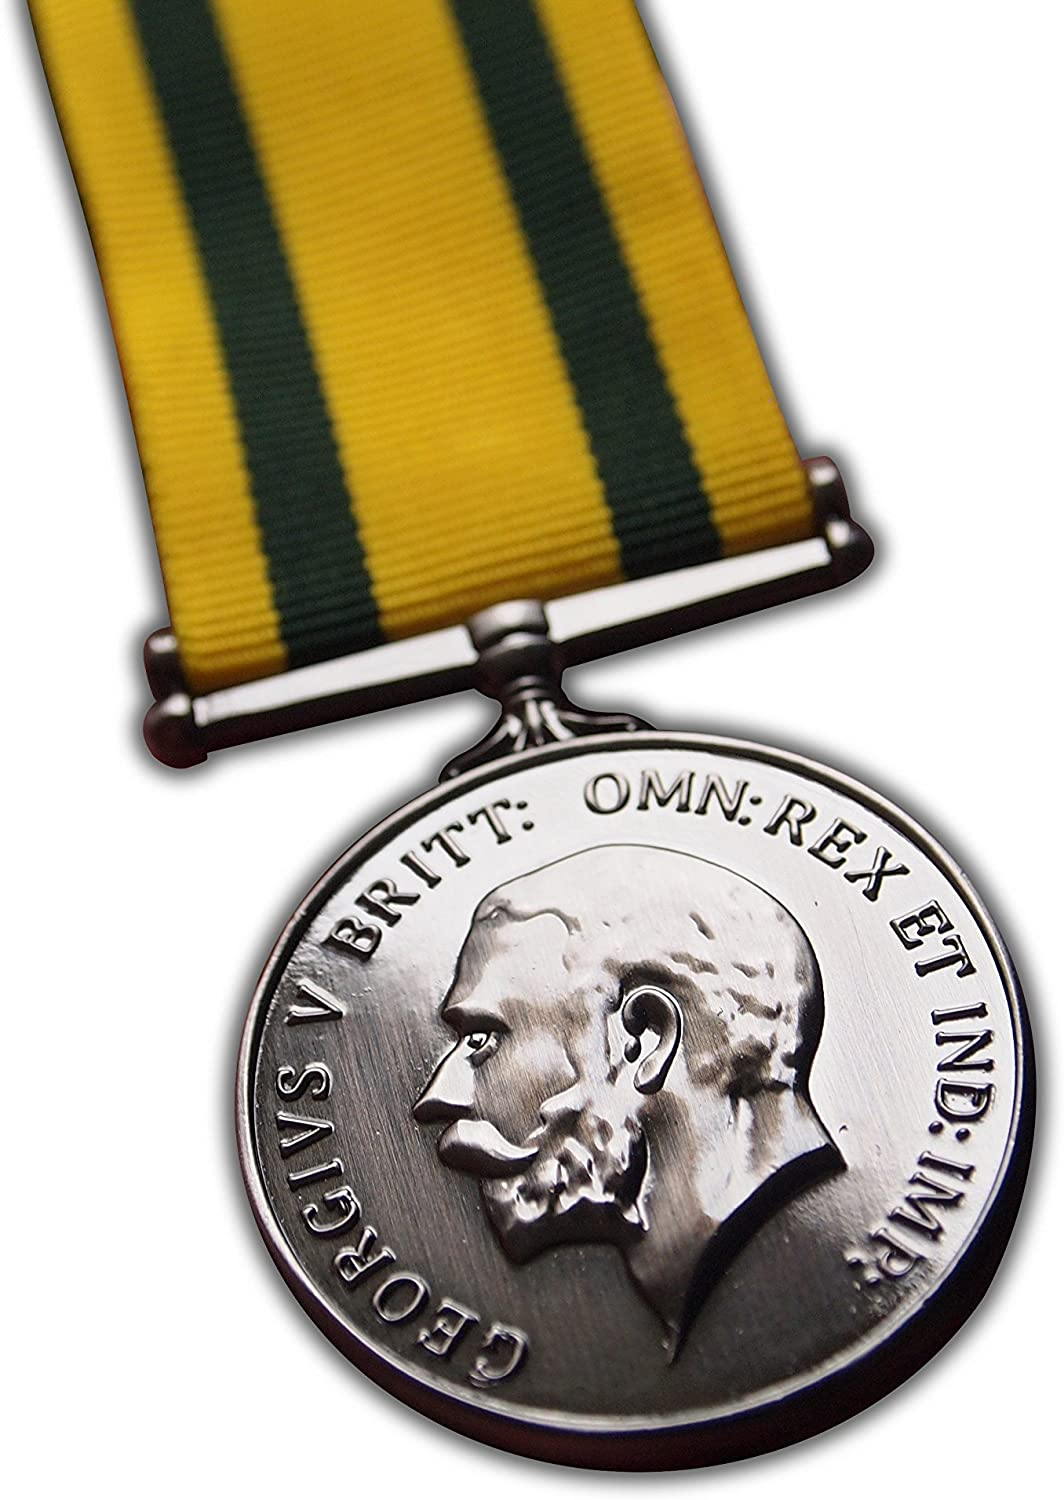 Territorial Force War Medal Full Size Rare Repro WW1 Military Award For Campaign Service in army